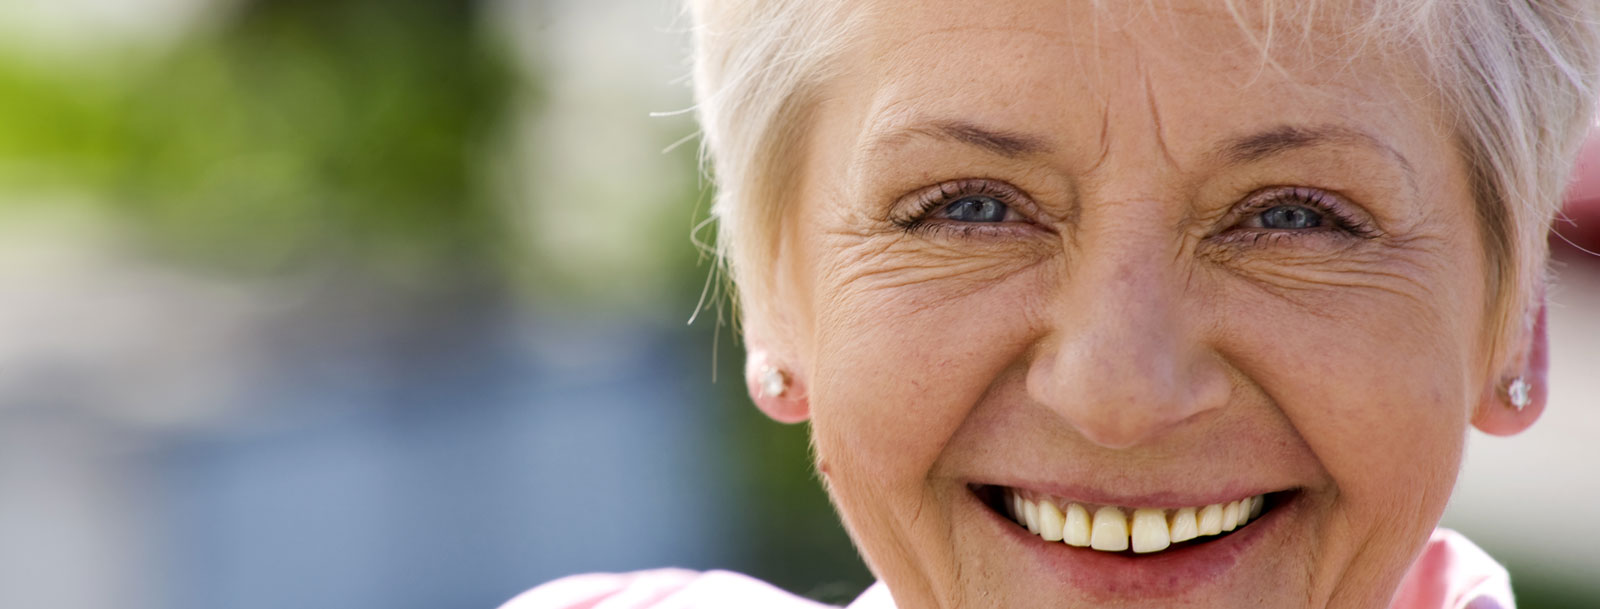 Newton senior living has lots of living options for you